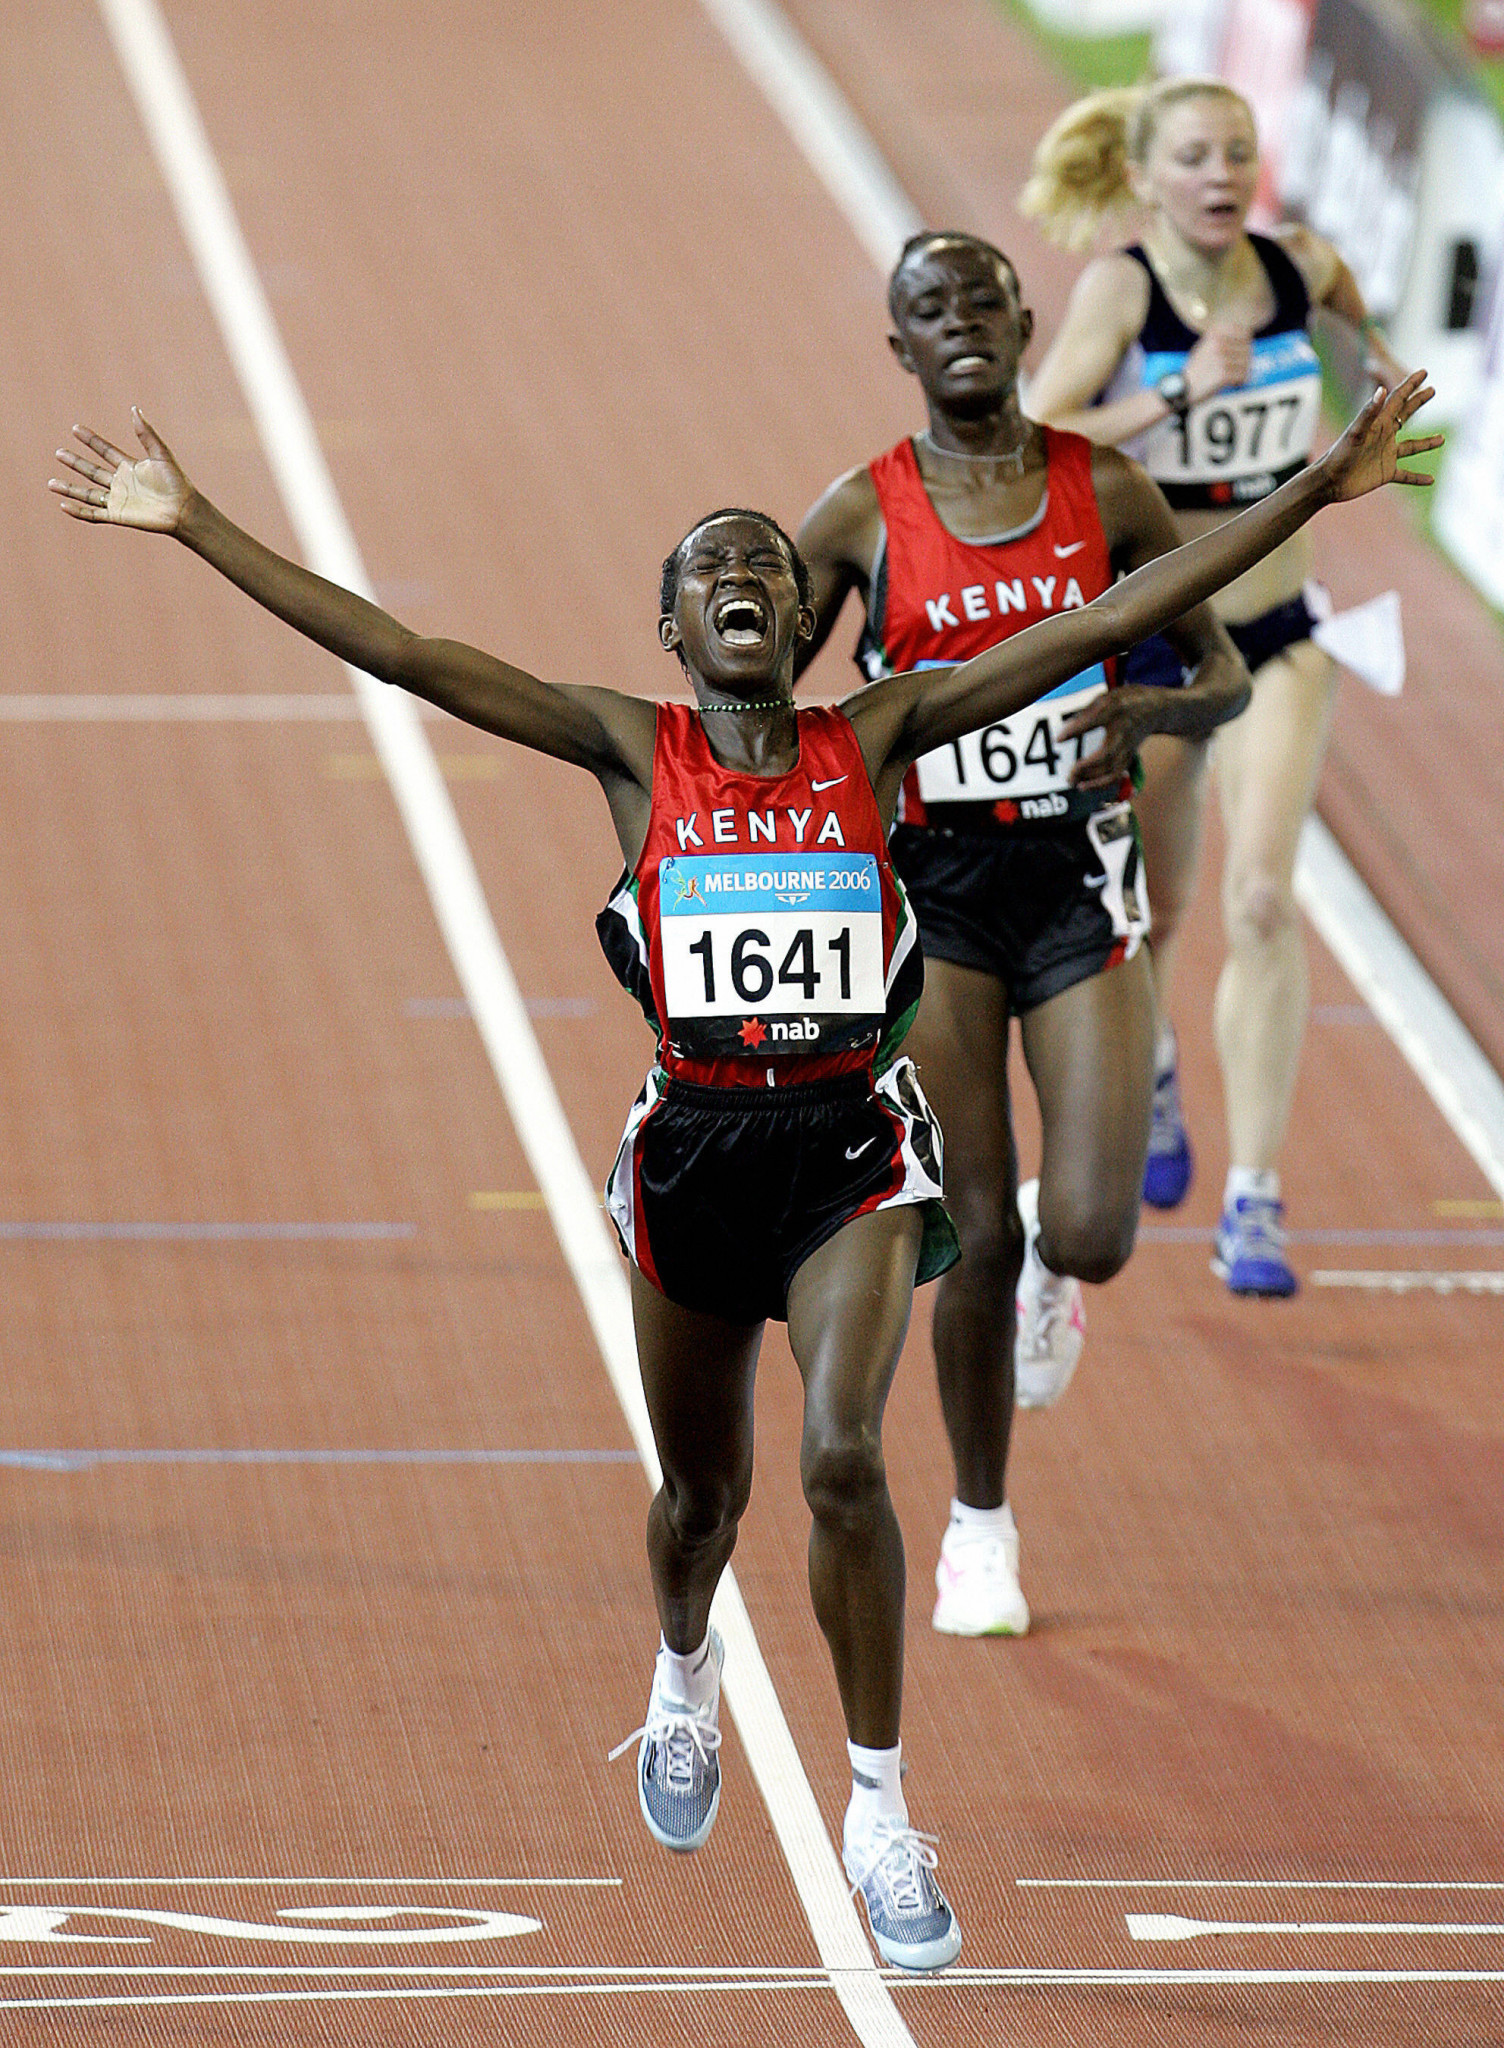 Kenya's 2006 Commonwealth Games 10,000 metres gold medallist Lucy Wangui Kabuu has been suspended for two years after a positive drugs test last April ©Getty Images